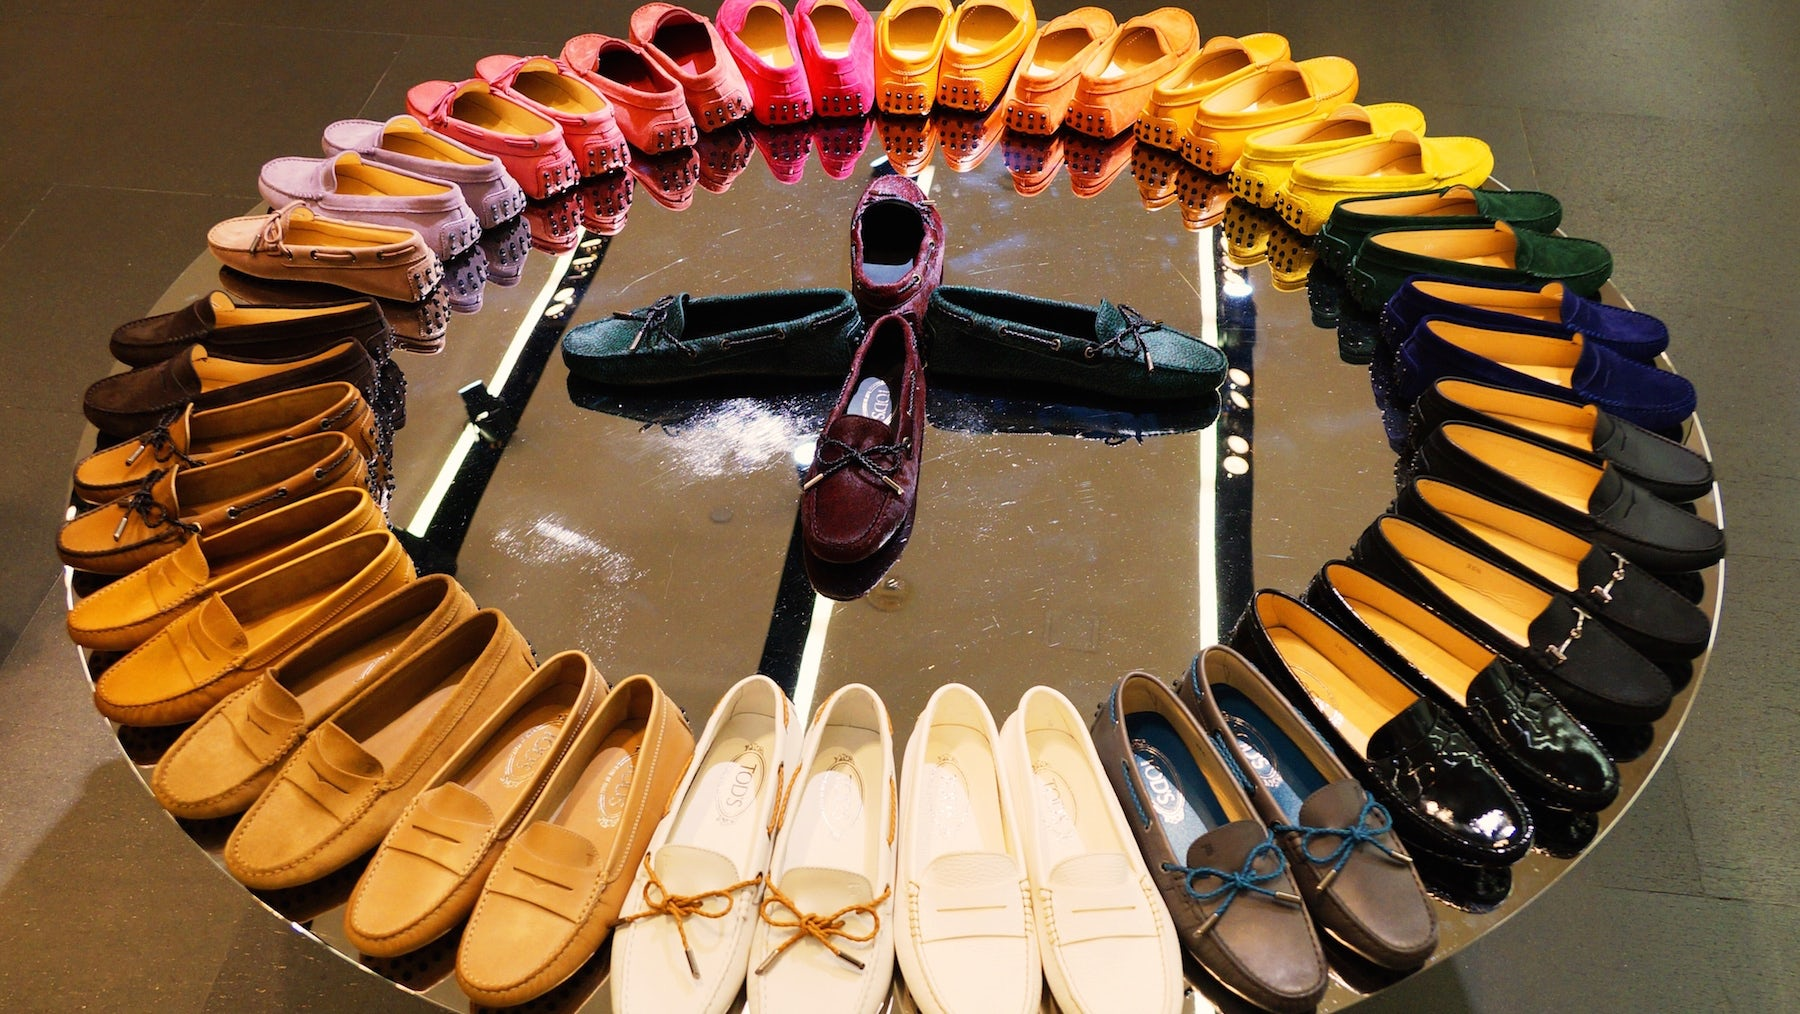 A selection of Tod's loafers | Source: Shutterstock